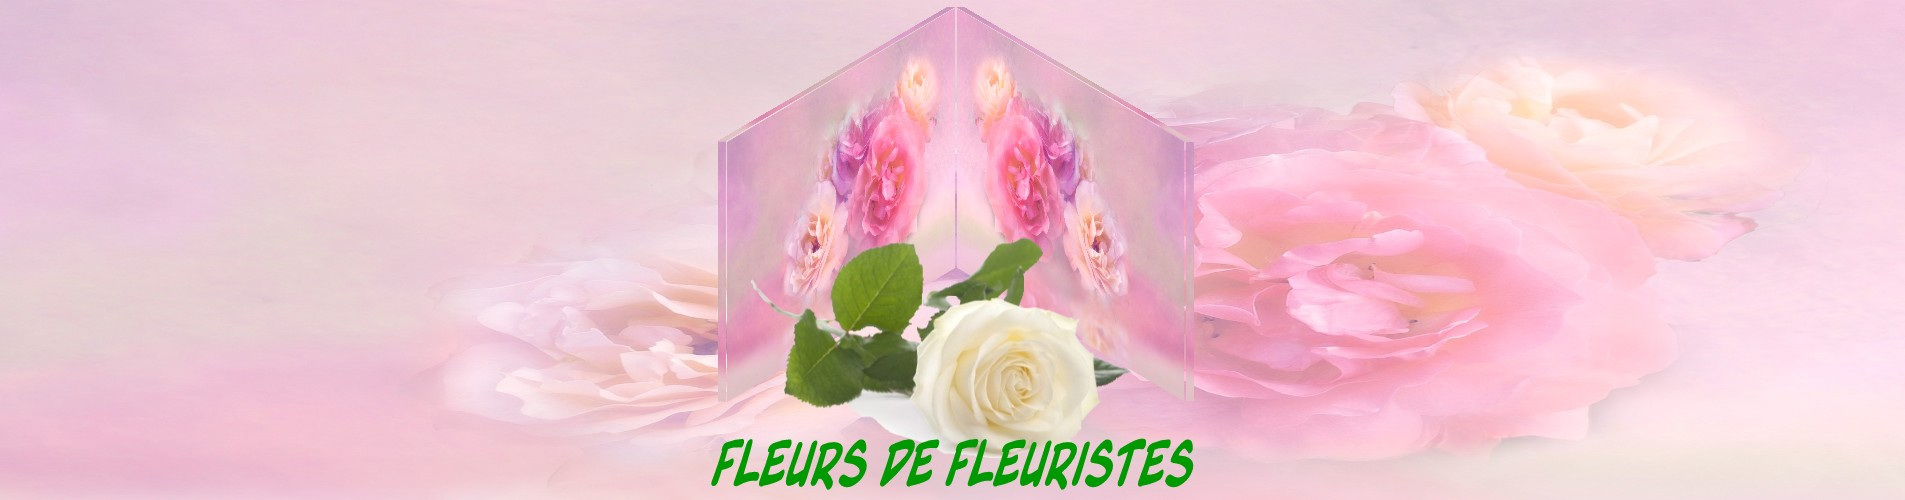 FLEURISTE SAILLANT